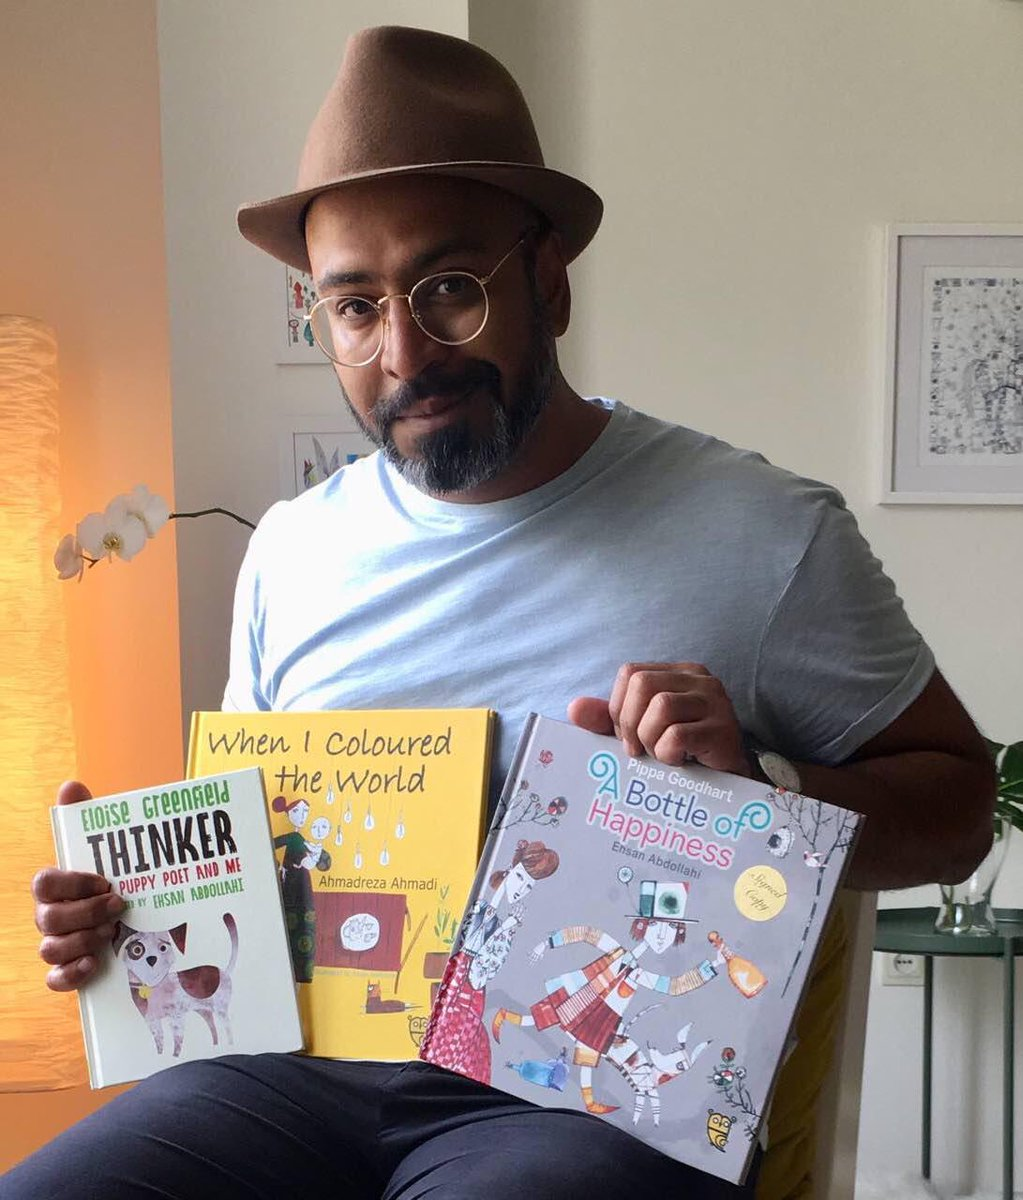 Lovely booksellers and librarians! We were wondering if you could show your effective support on the #VisaforAbdollahi issue and feature #EhsanAbdollahi&#39;s beautiful books? It&#39;s absolutely heart-warming if you could send any photo to us.<br>http://pic.twitter.com/0Pbx7j3Rr3